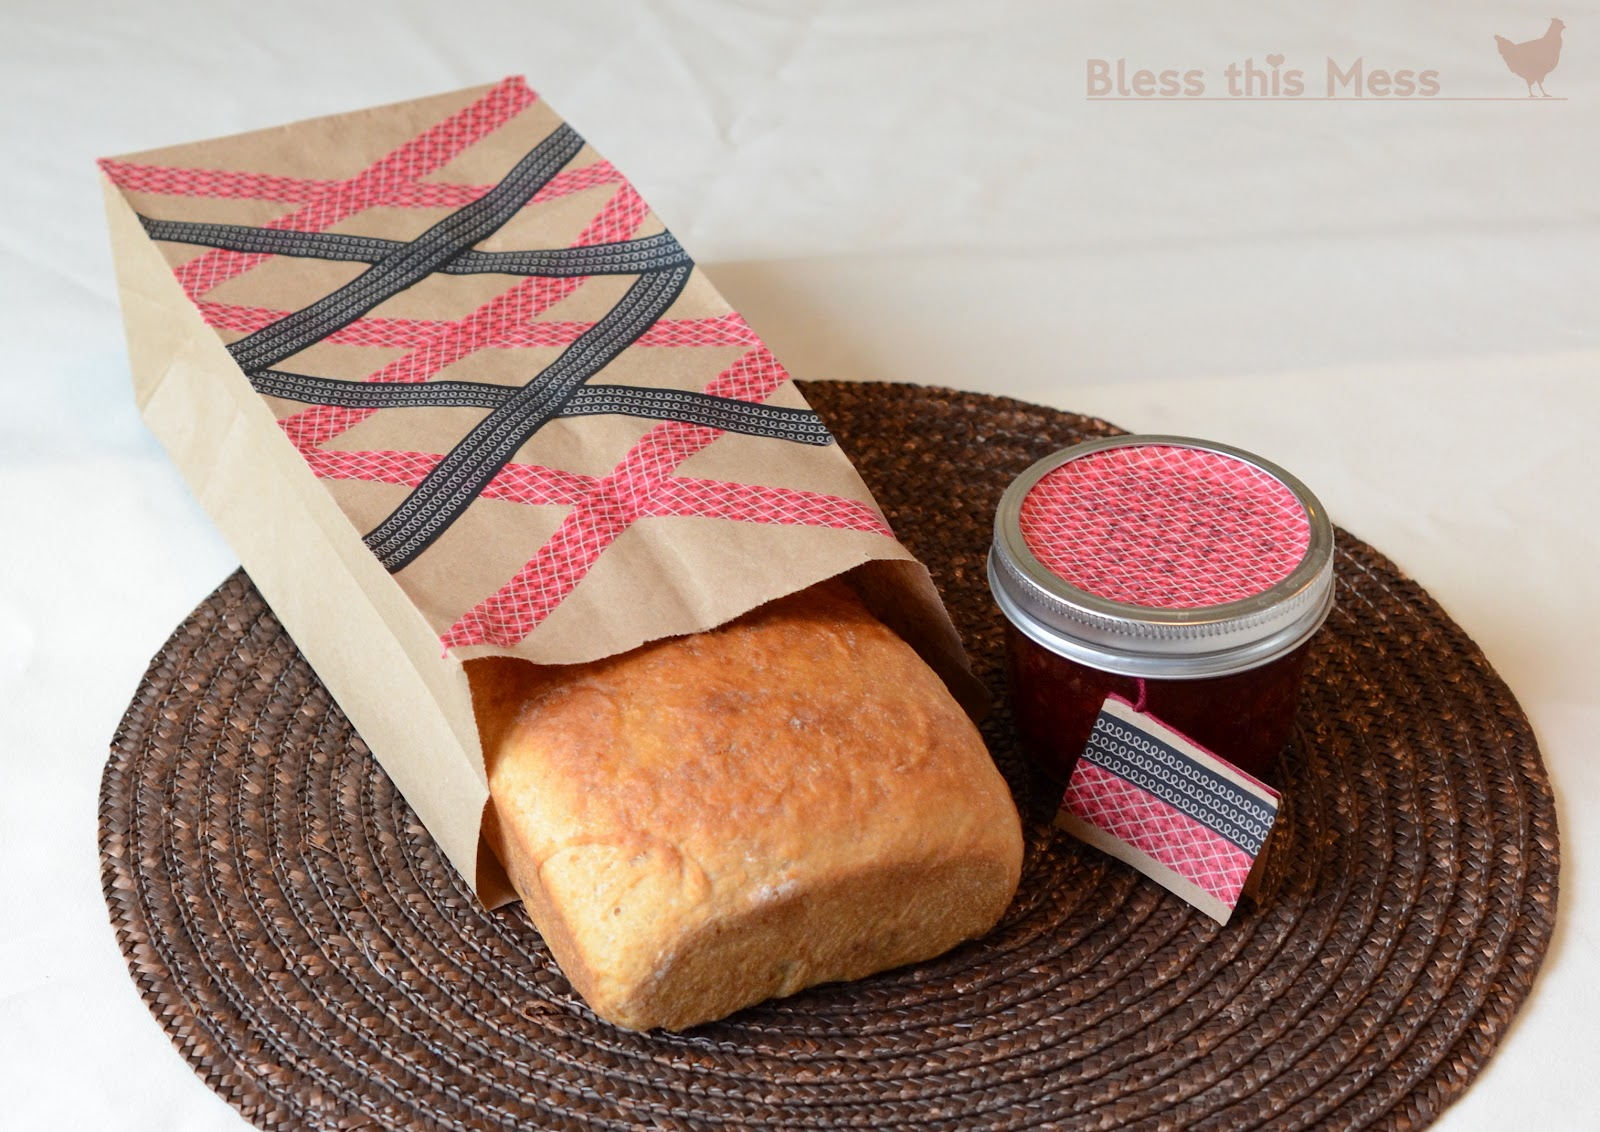 Washi tape canning lids and paper bags bless this mess washi tape craft ideas jeuxipadfo Choice Image